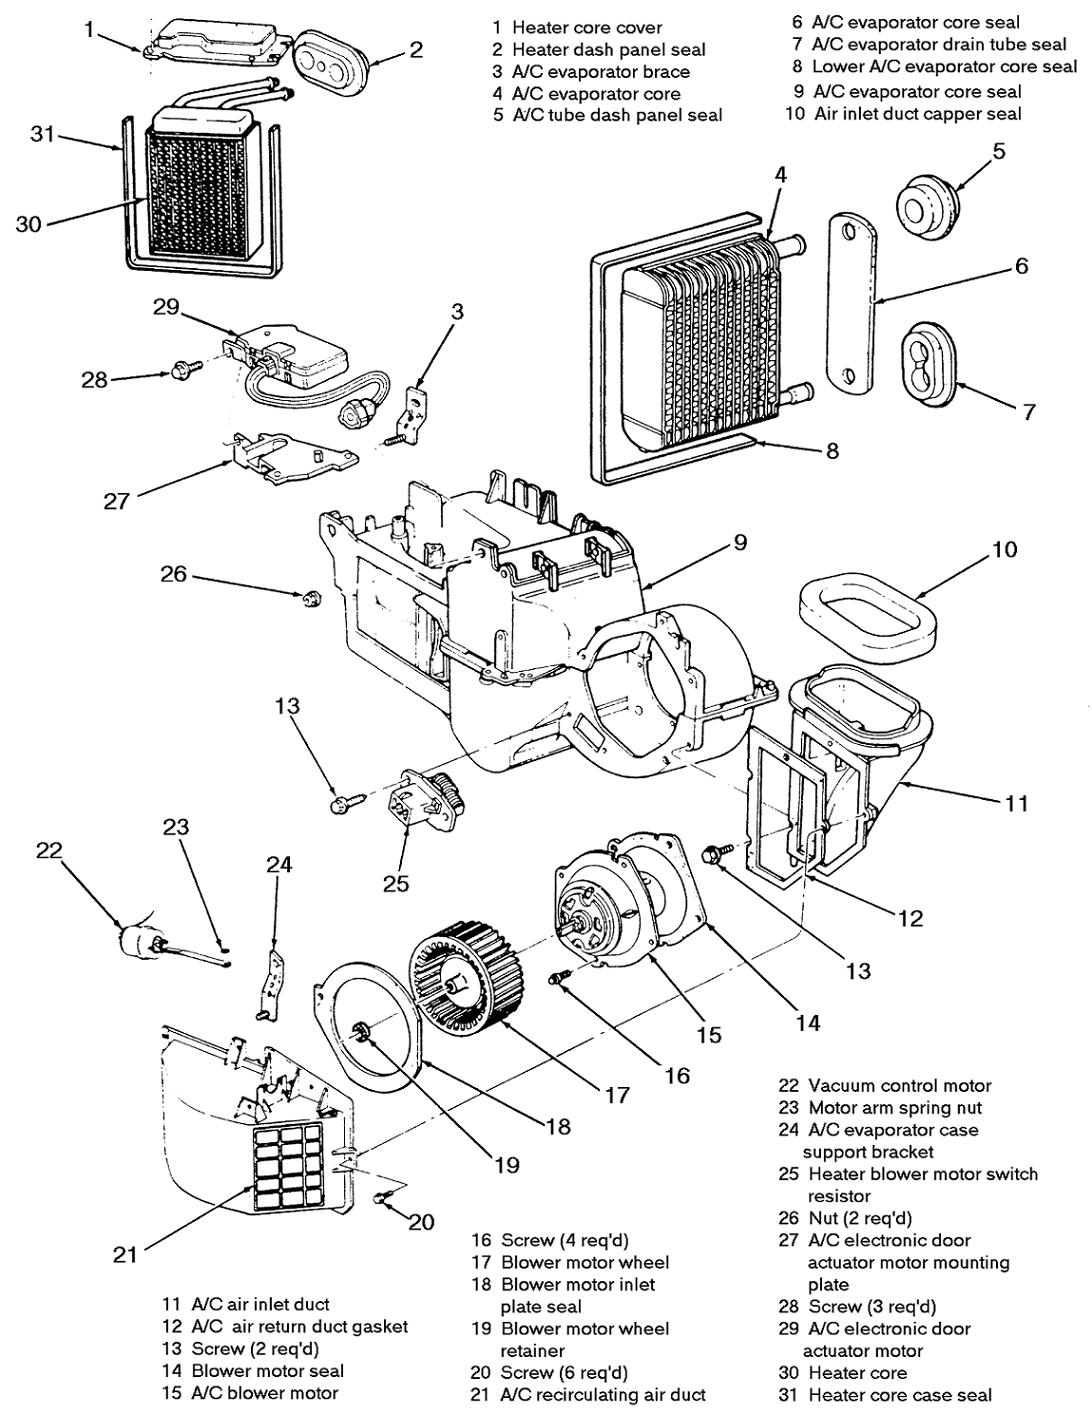 service manual  2008 ford taurus heater core replace